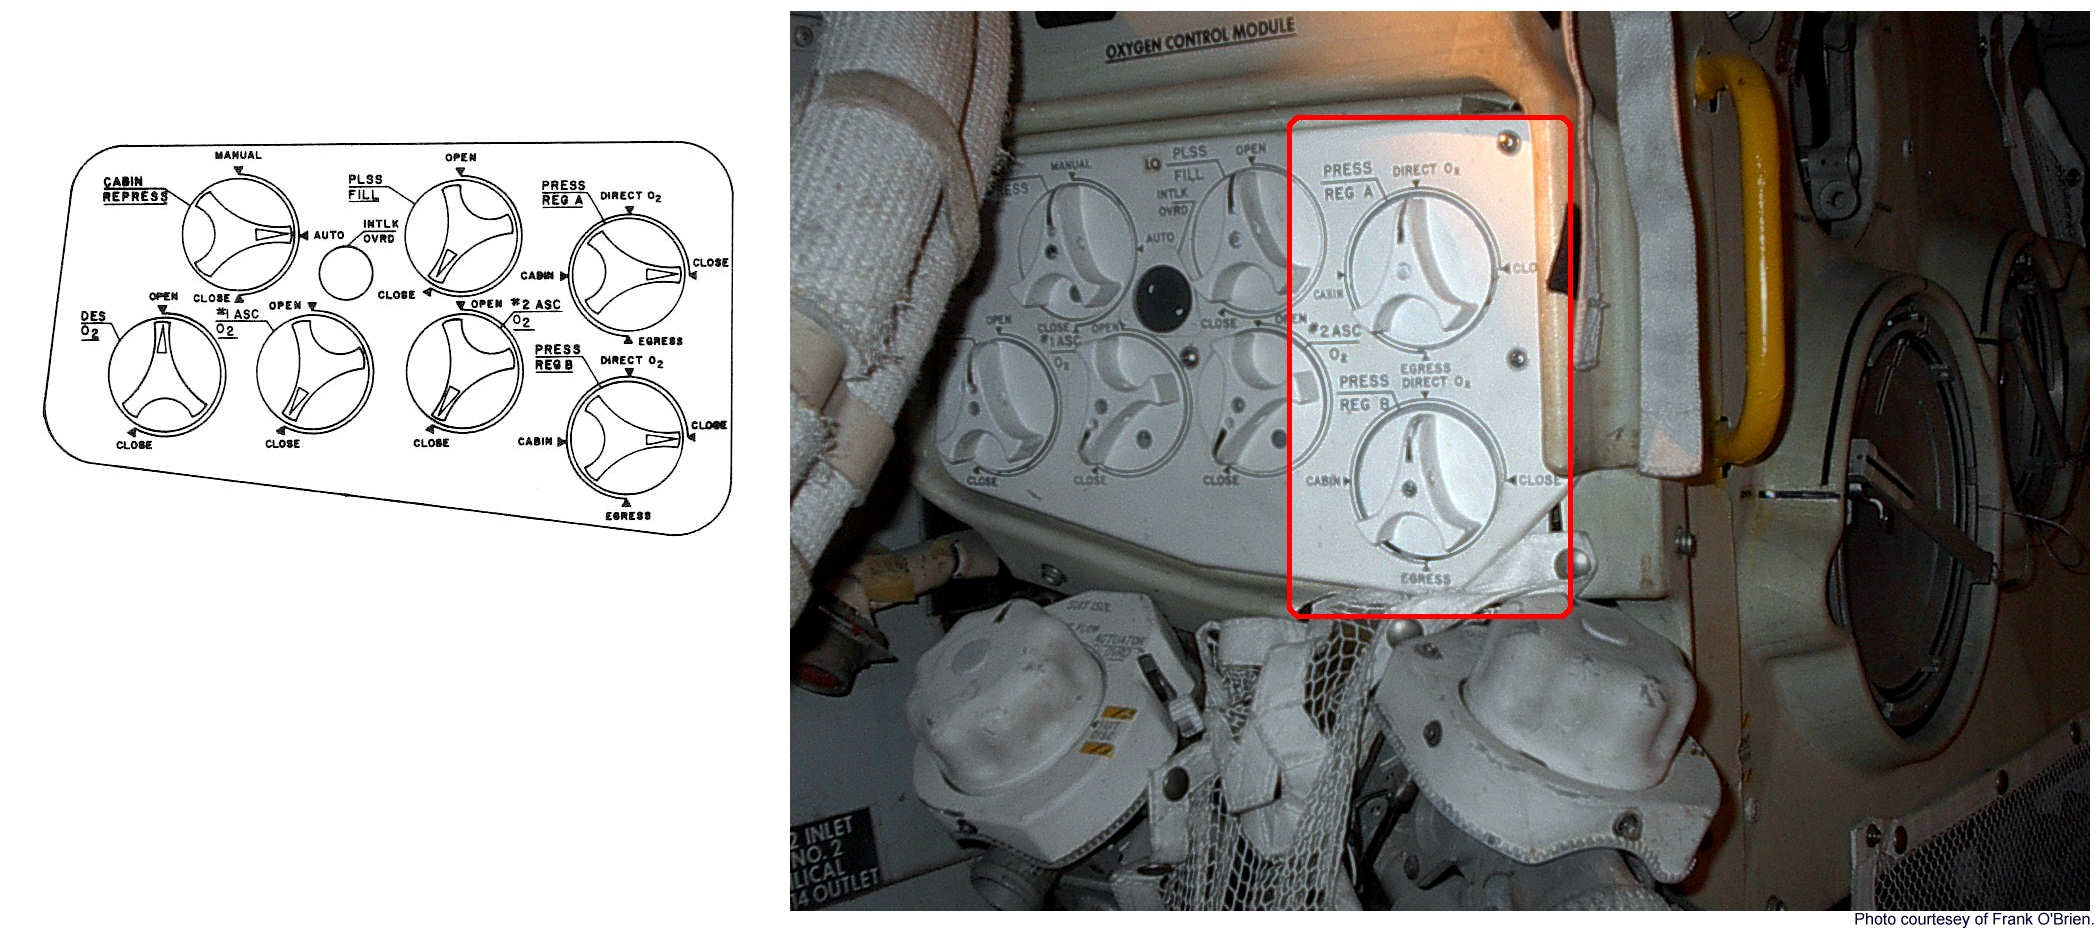 Preparations For Eva 3 Relay Wiring Besides Kc Light Harness As Well Gravity Led Pressure Regs A And B